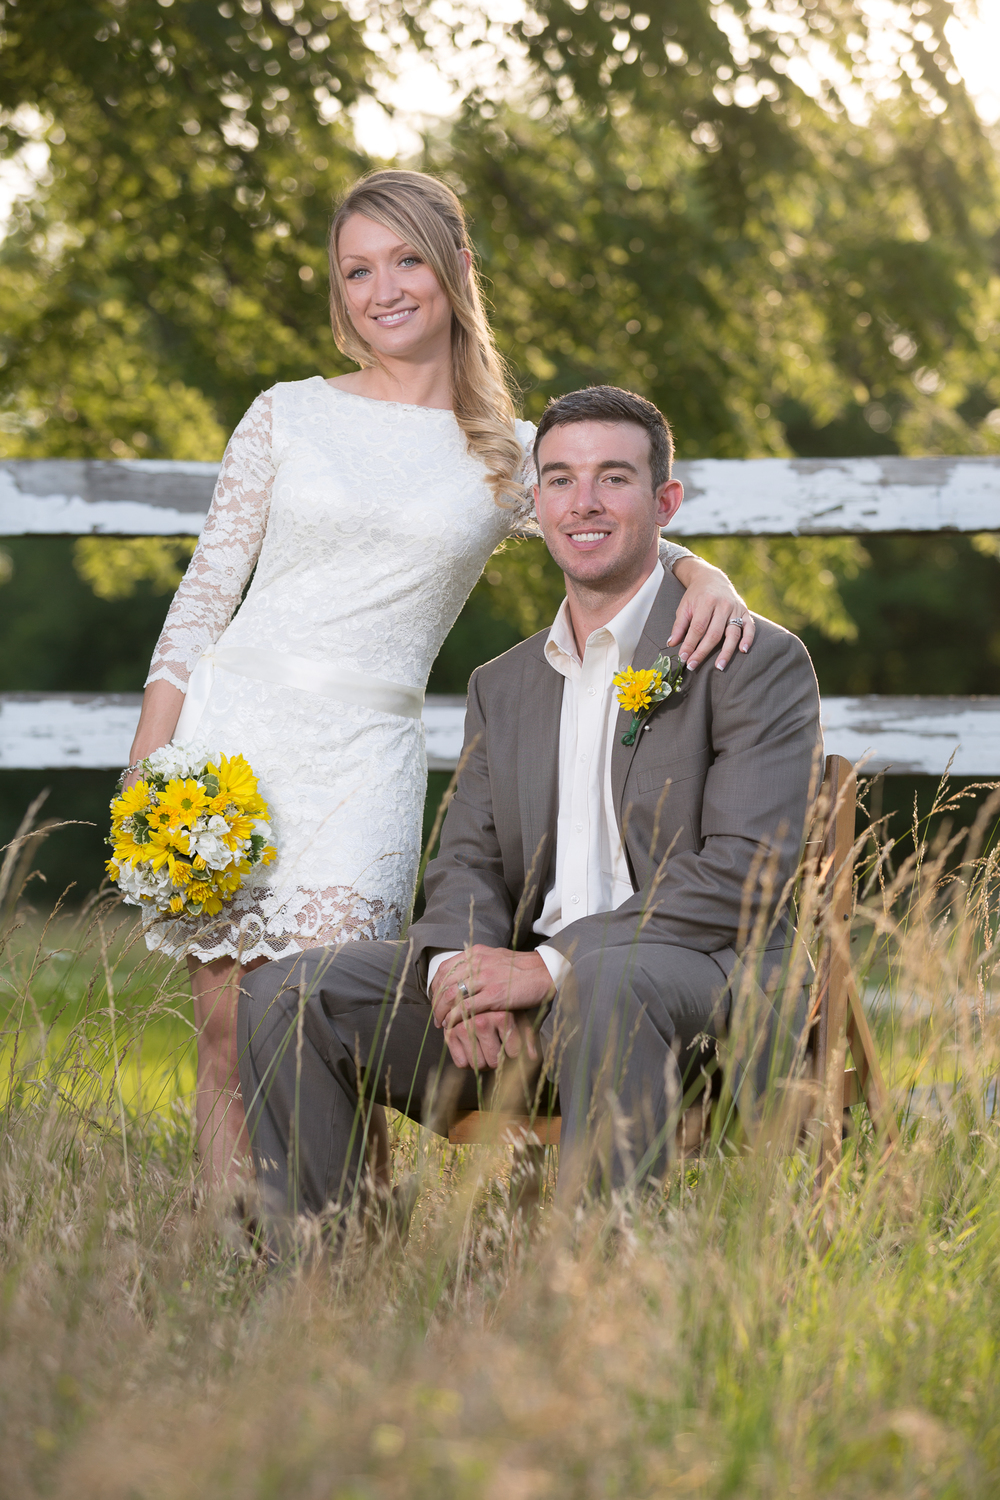 kansas city wedding photographer | anthem photography | www.anthem-photo.com - 17.jpg